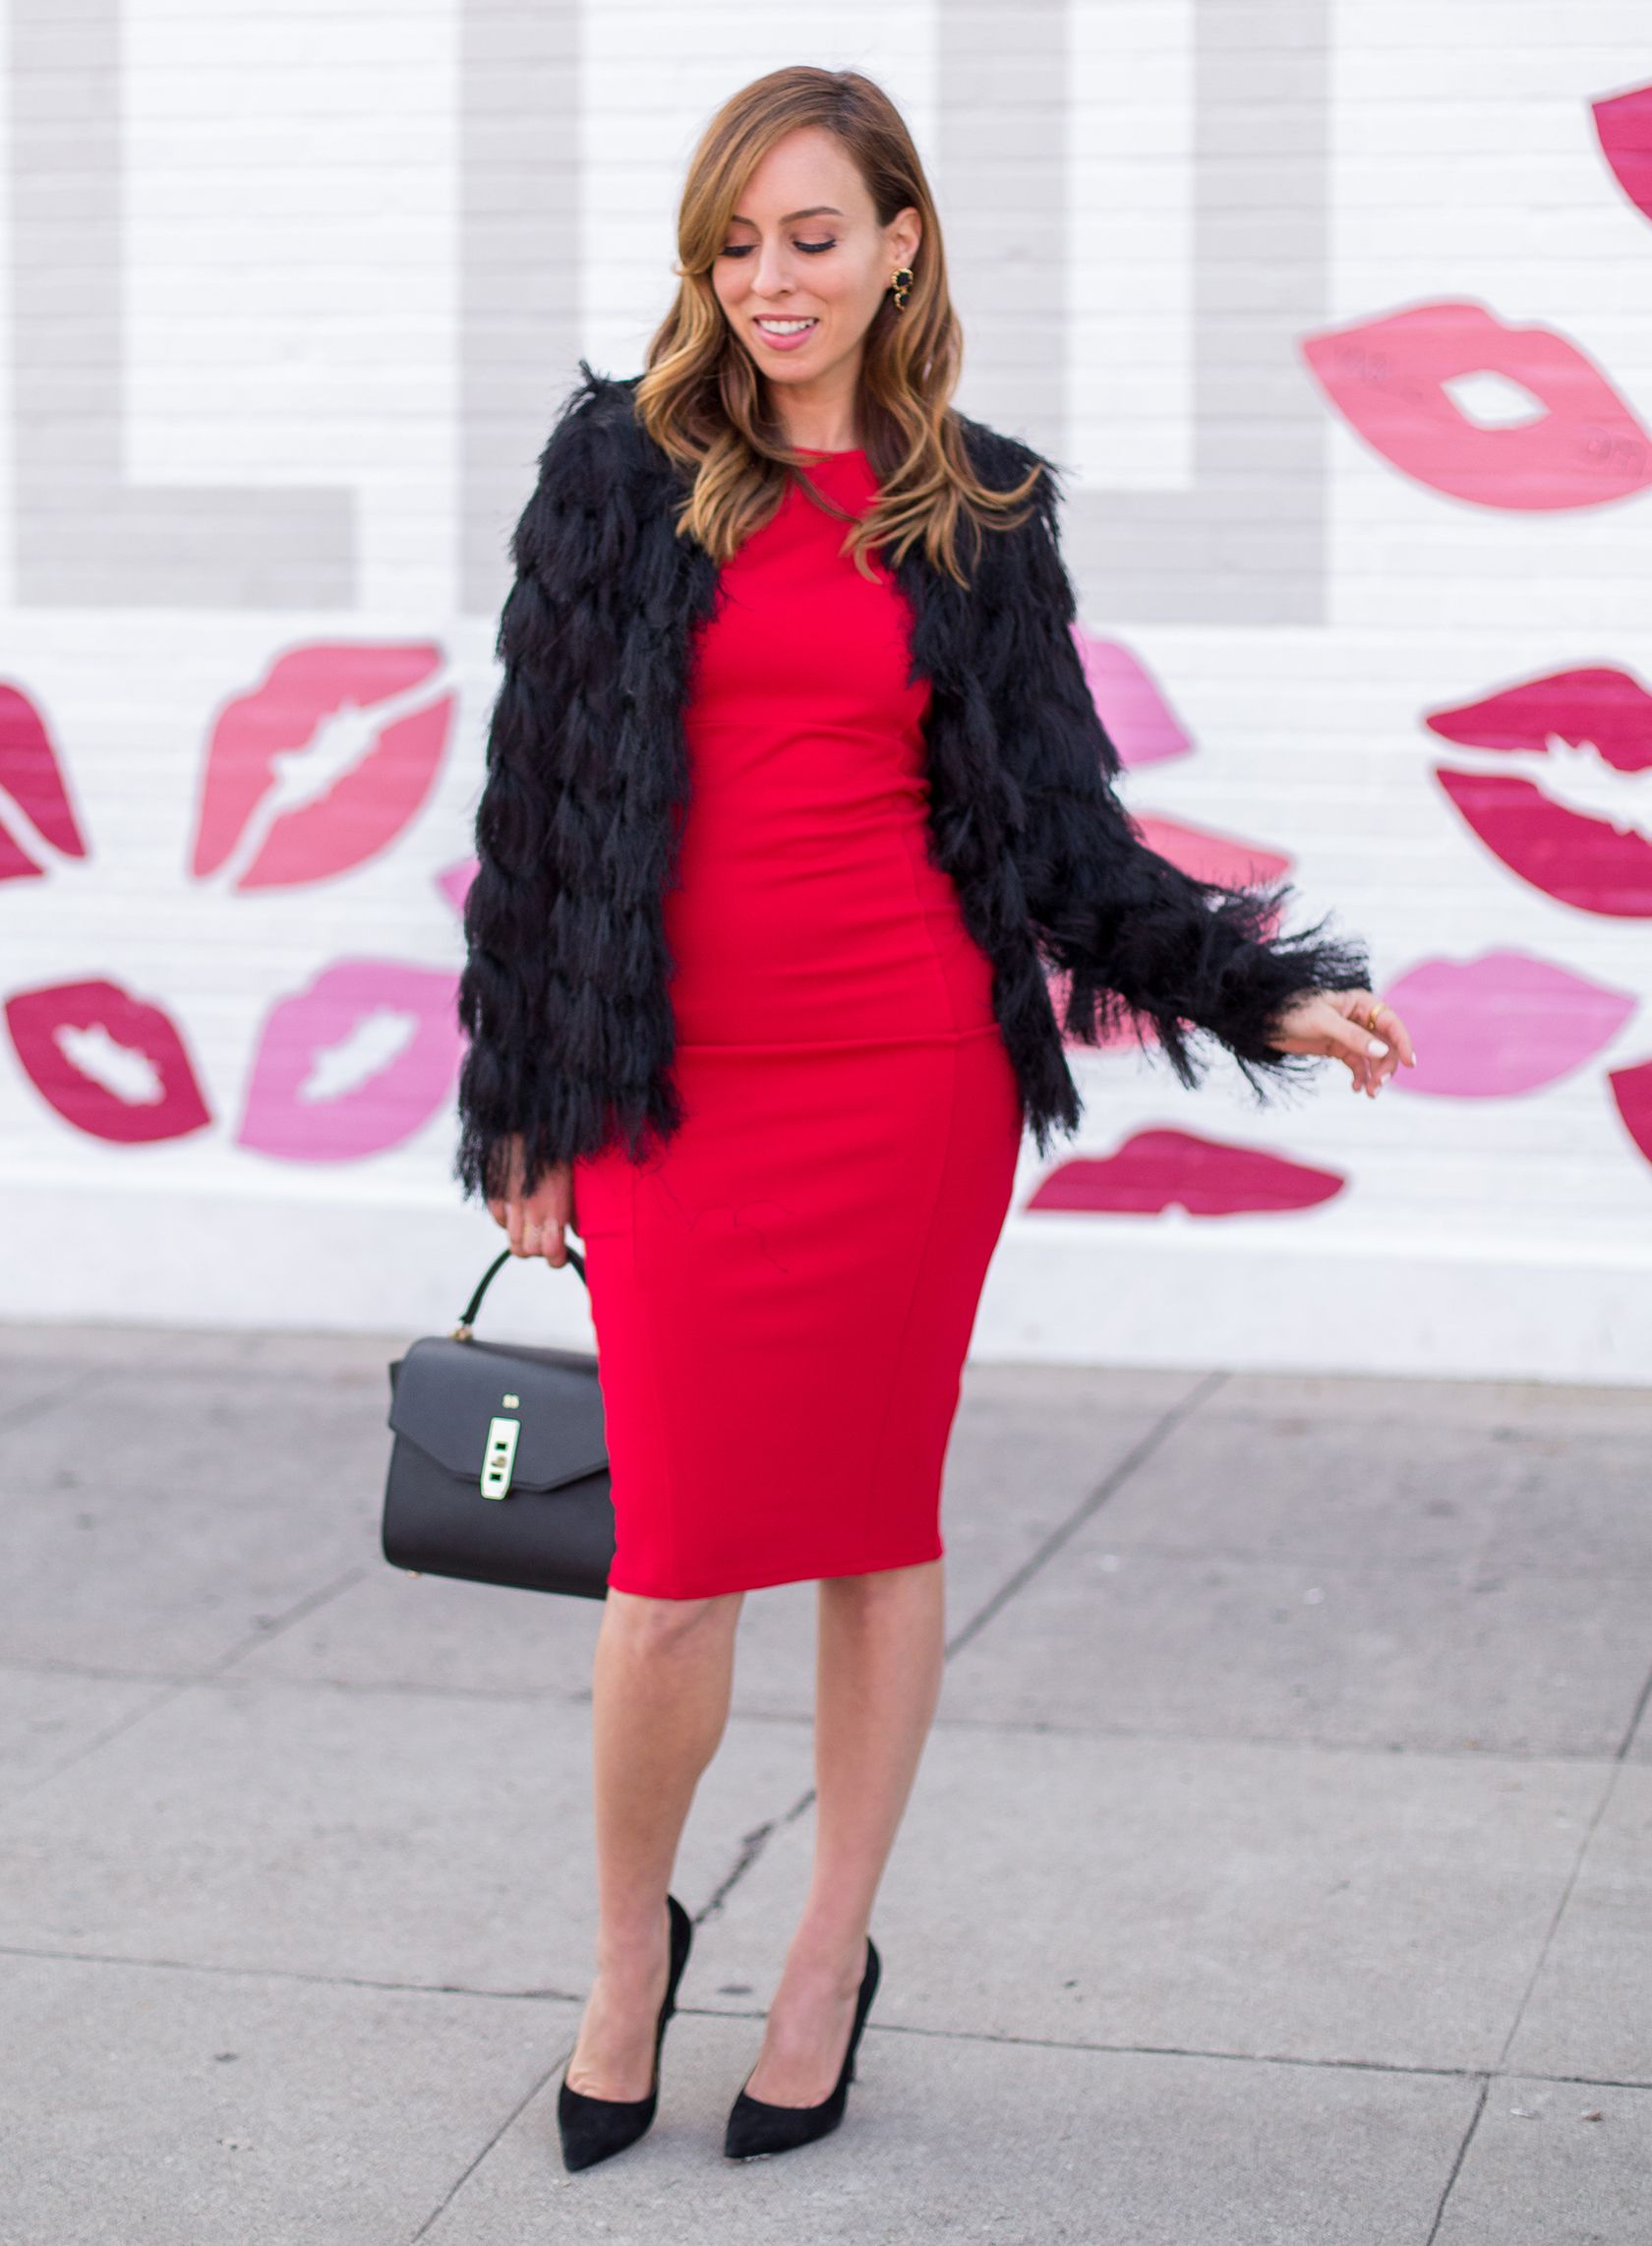 Sydne Style gives Valentines Day outfit idea in a little red dress ...